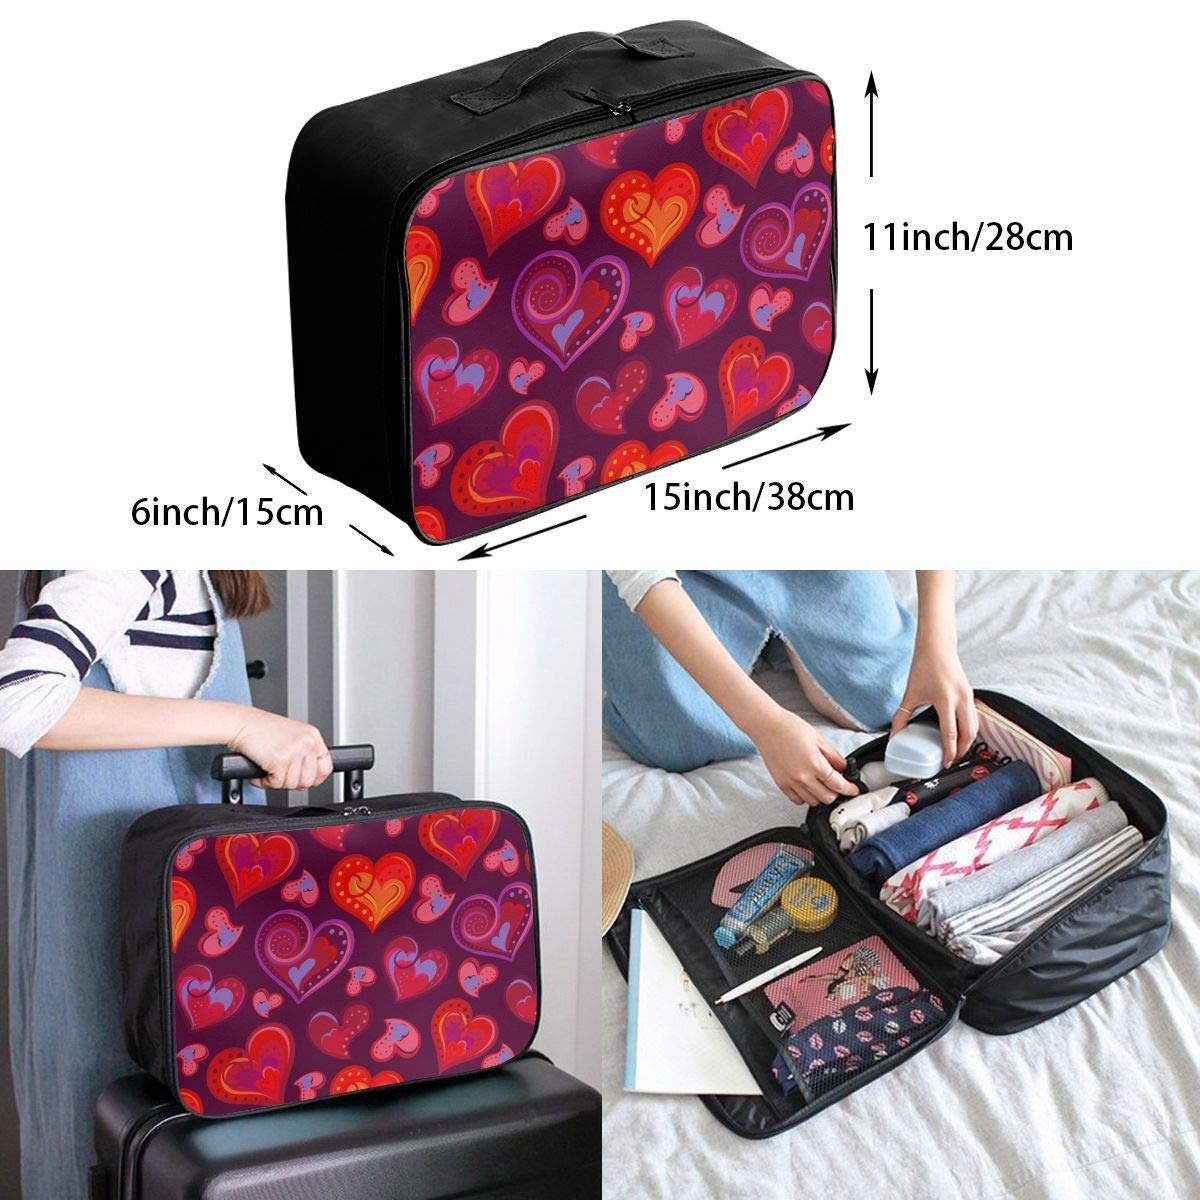 Foldable Travel Bag Travel Duffle Bag Lightweight Waterproof Travel Luggage Bag Love Heart Patterns JTRVW Luggage Bags for Travel